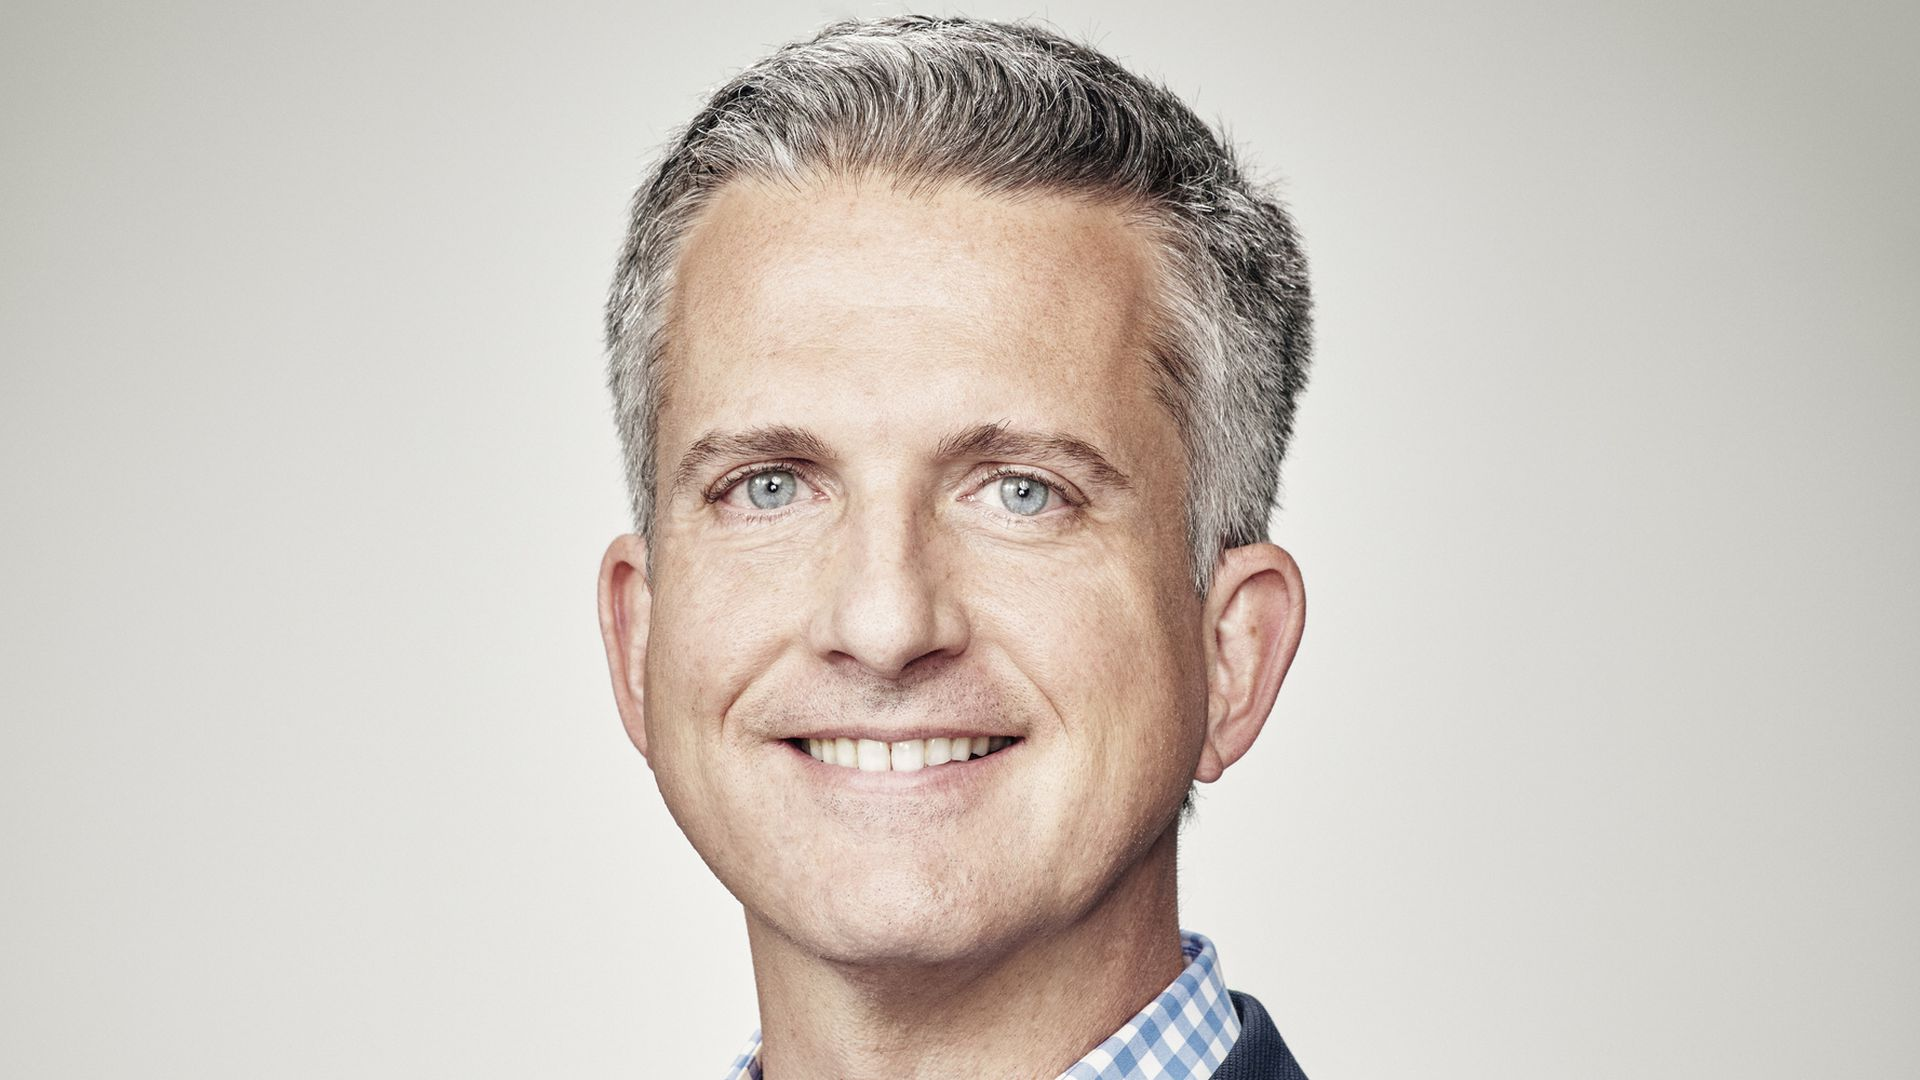 Audio service Spotify acquiring Bill Simmons' The Ringer